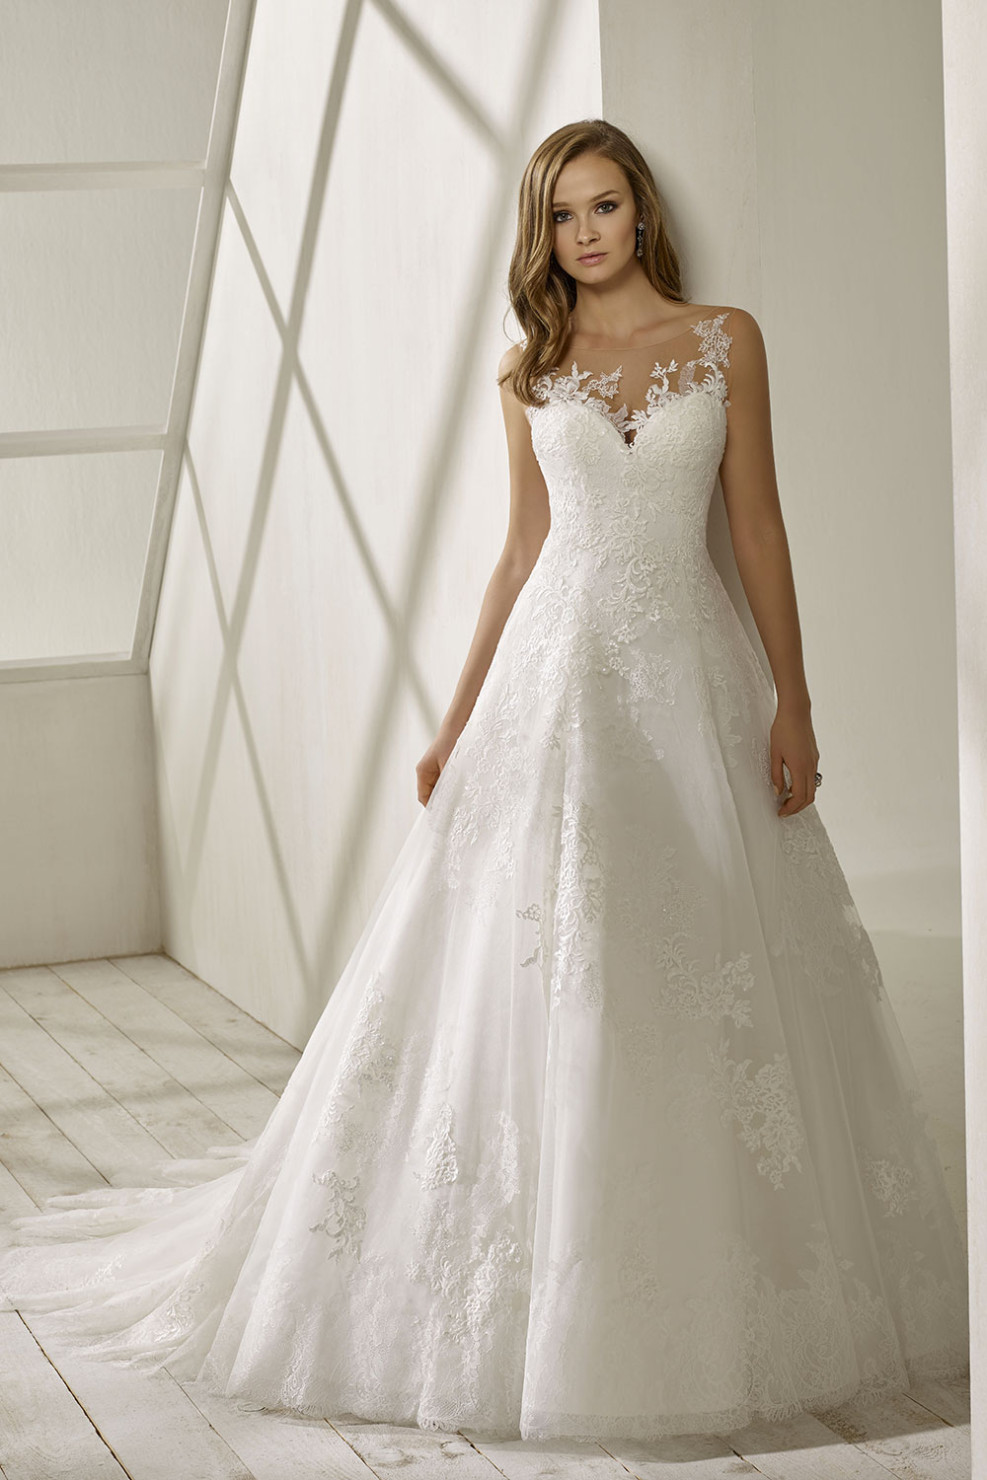 STYLE 192.14 - Morelle Mariage